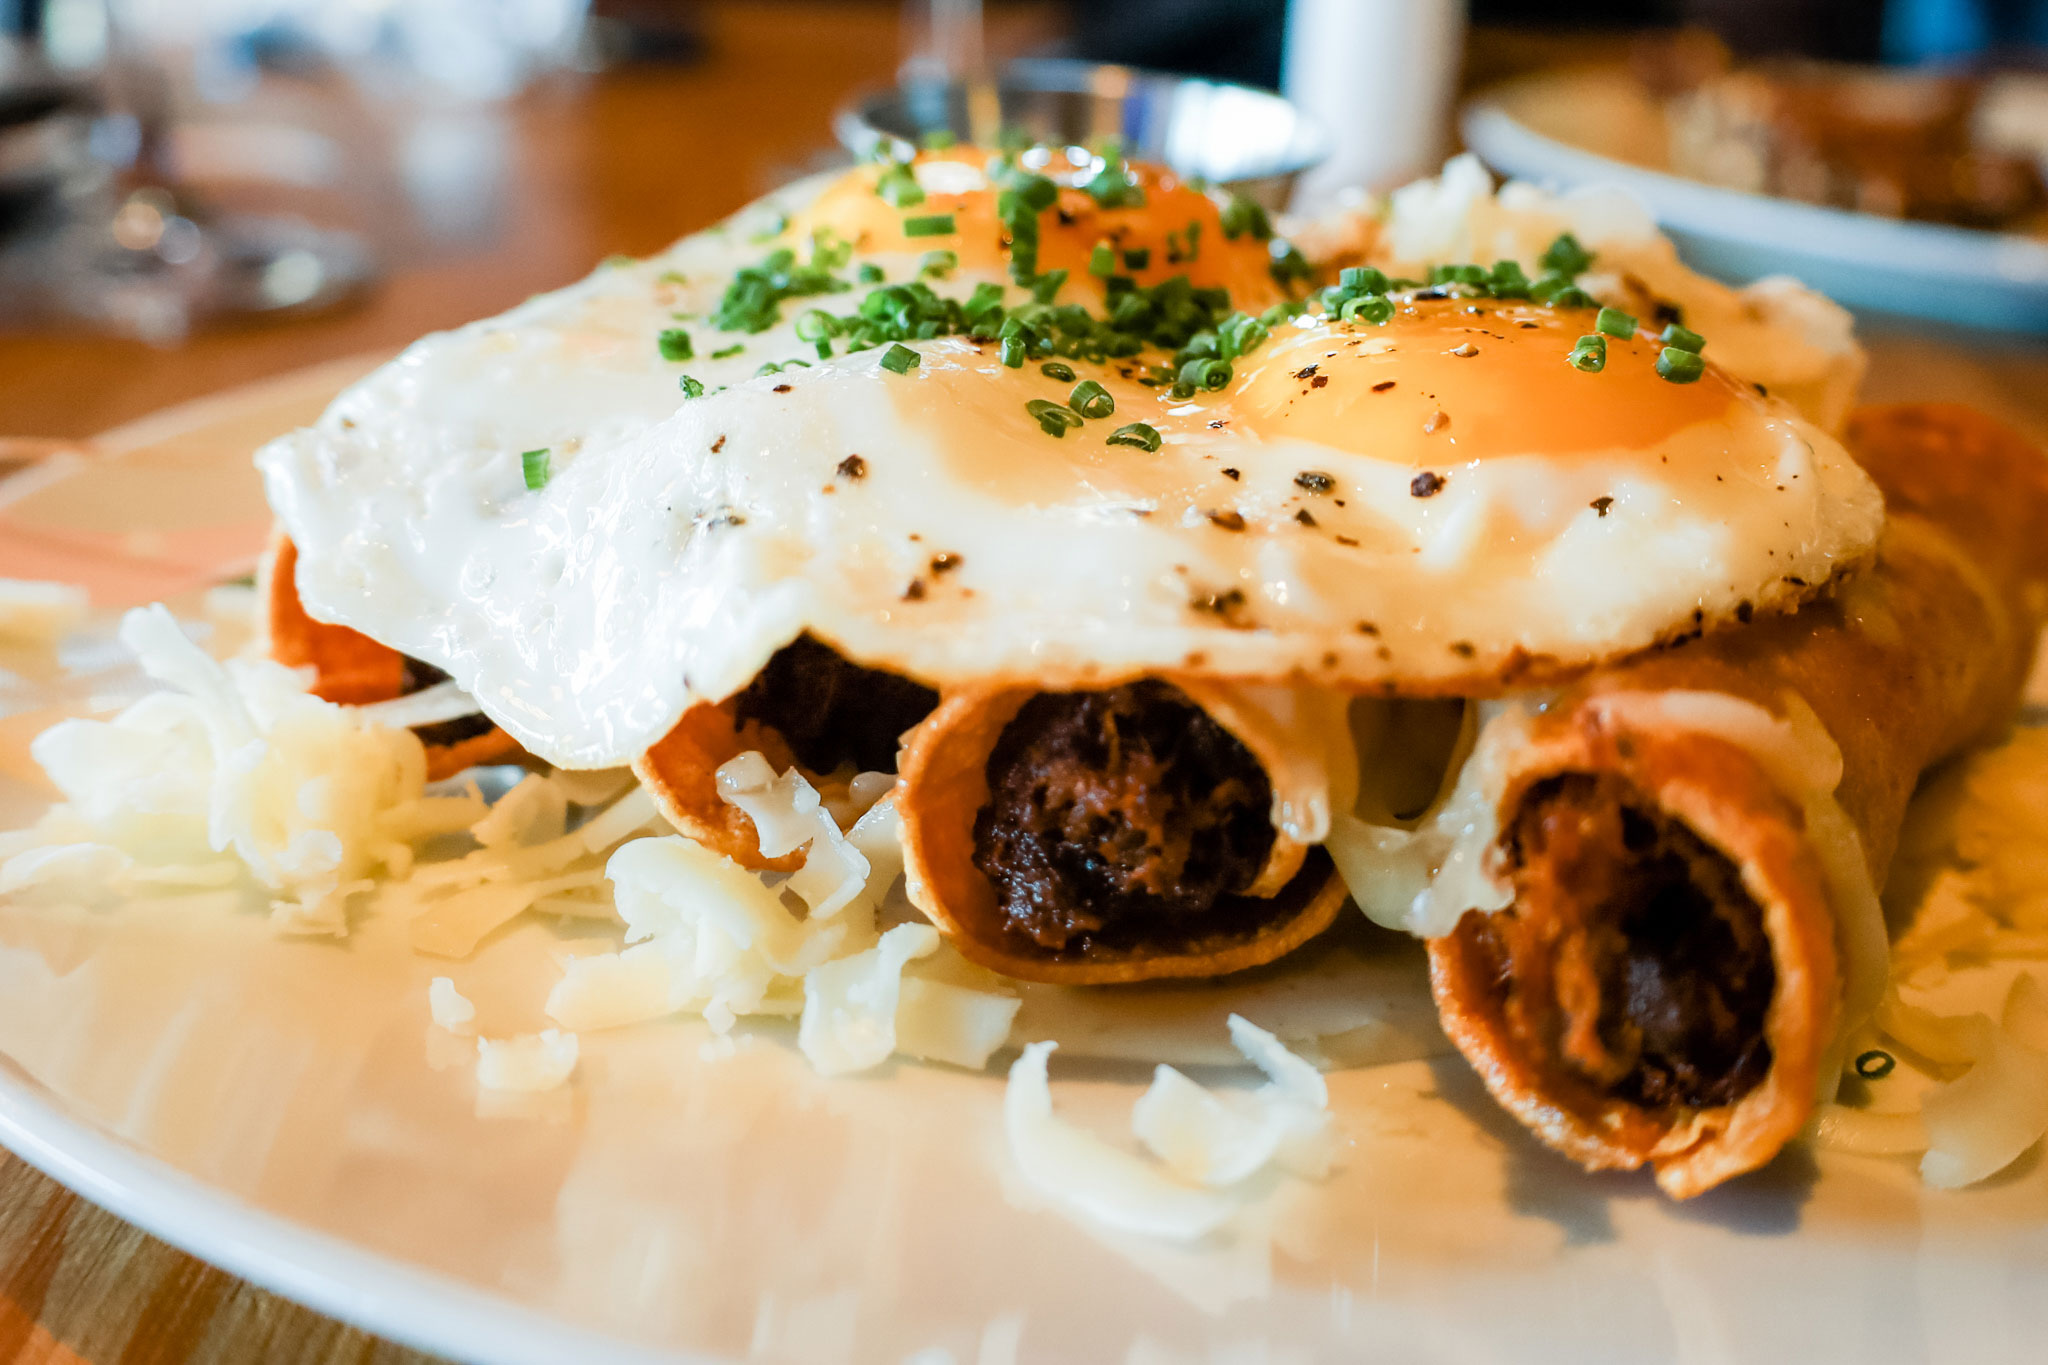 A plate of taquitos topped with a fried egg.